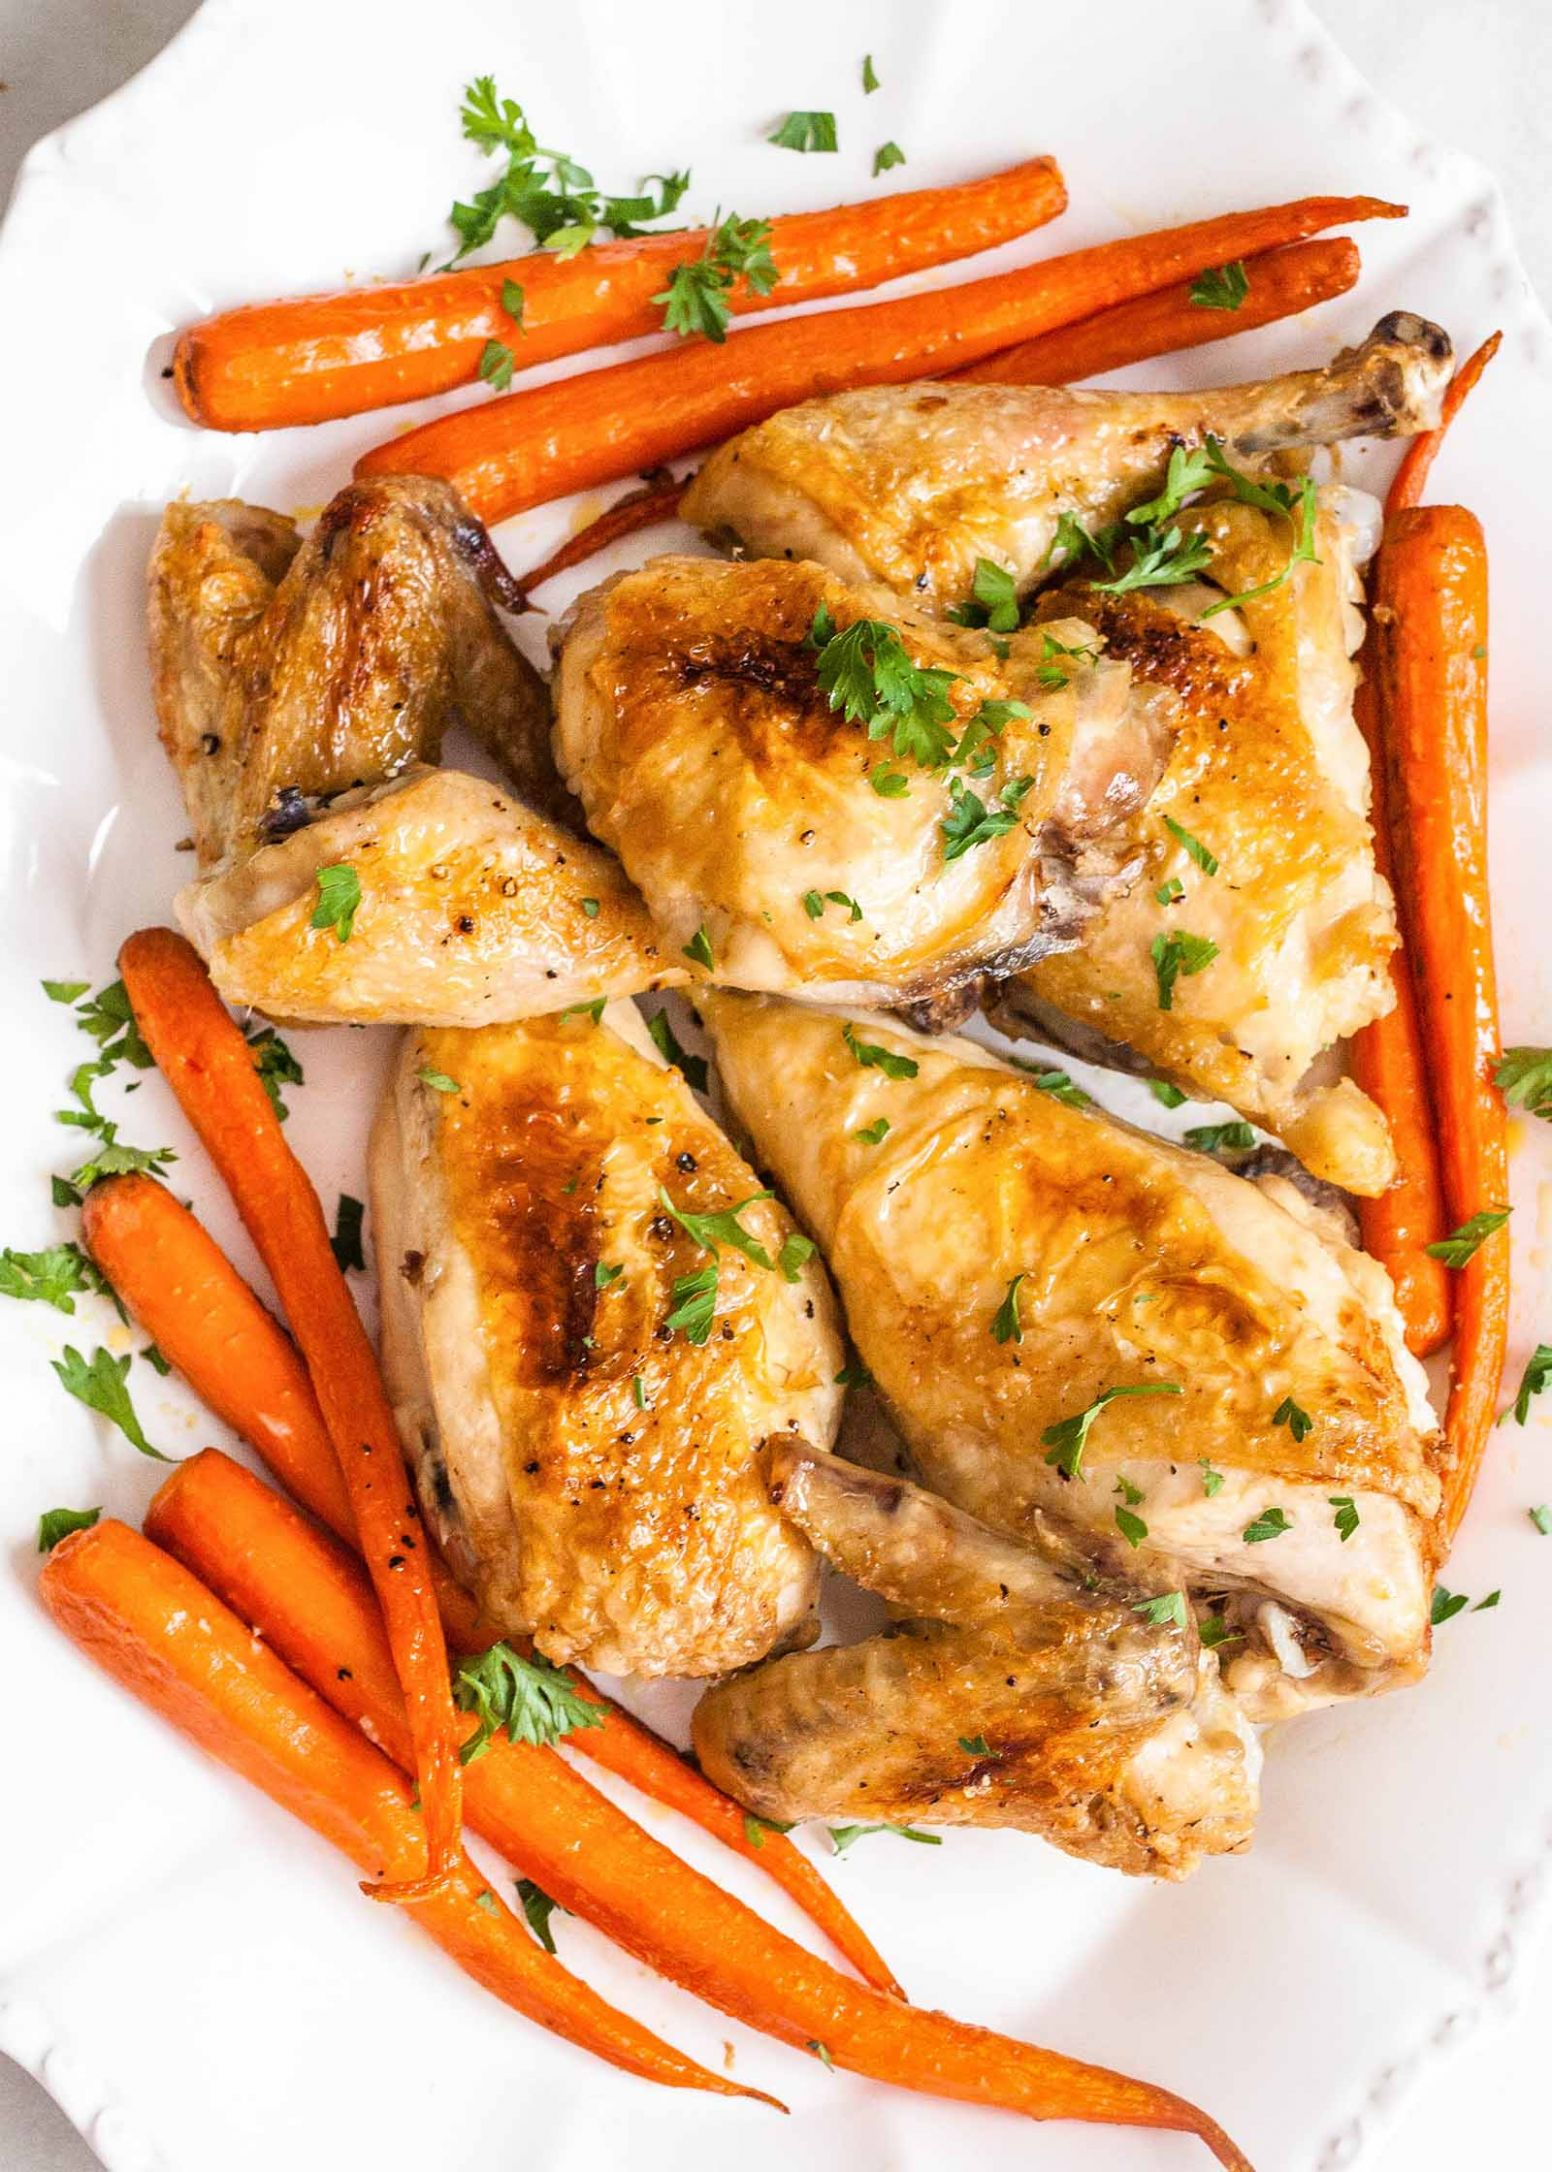 Classic Baked Chicken - Recipes Chicken In Oven